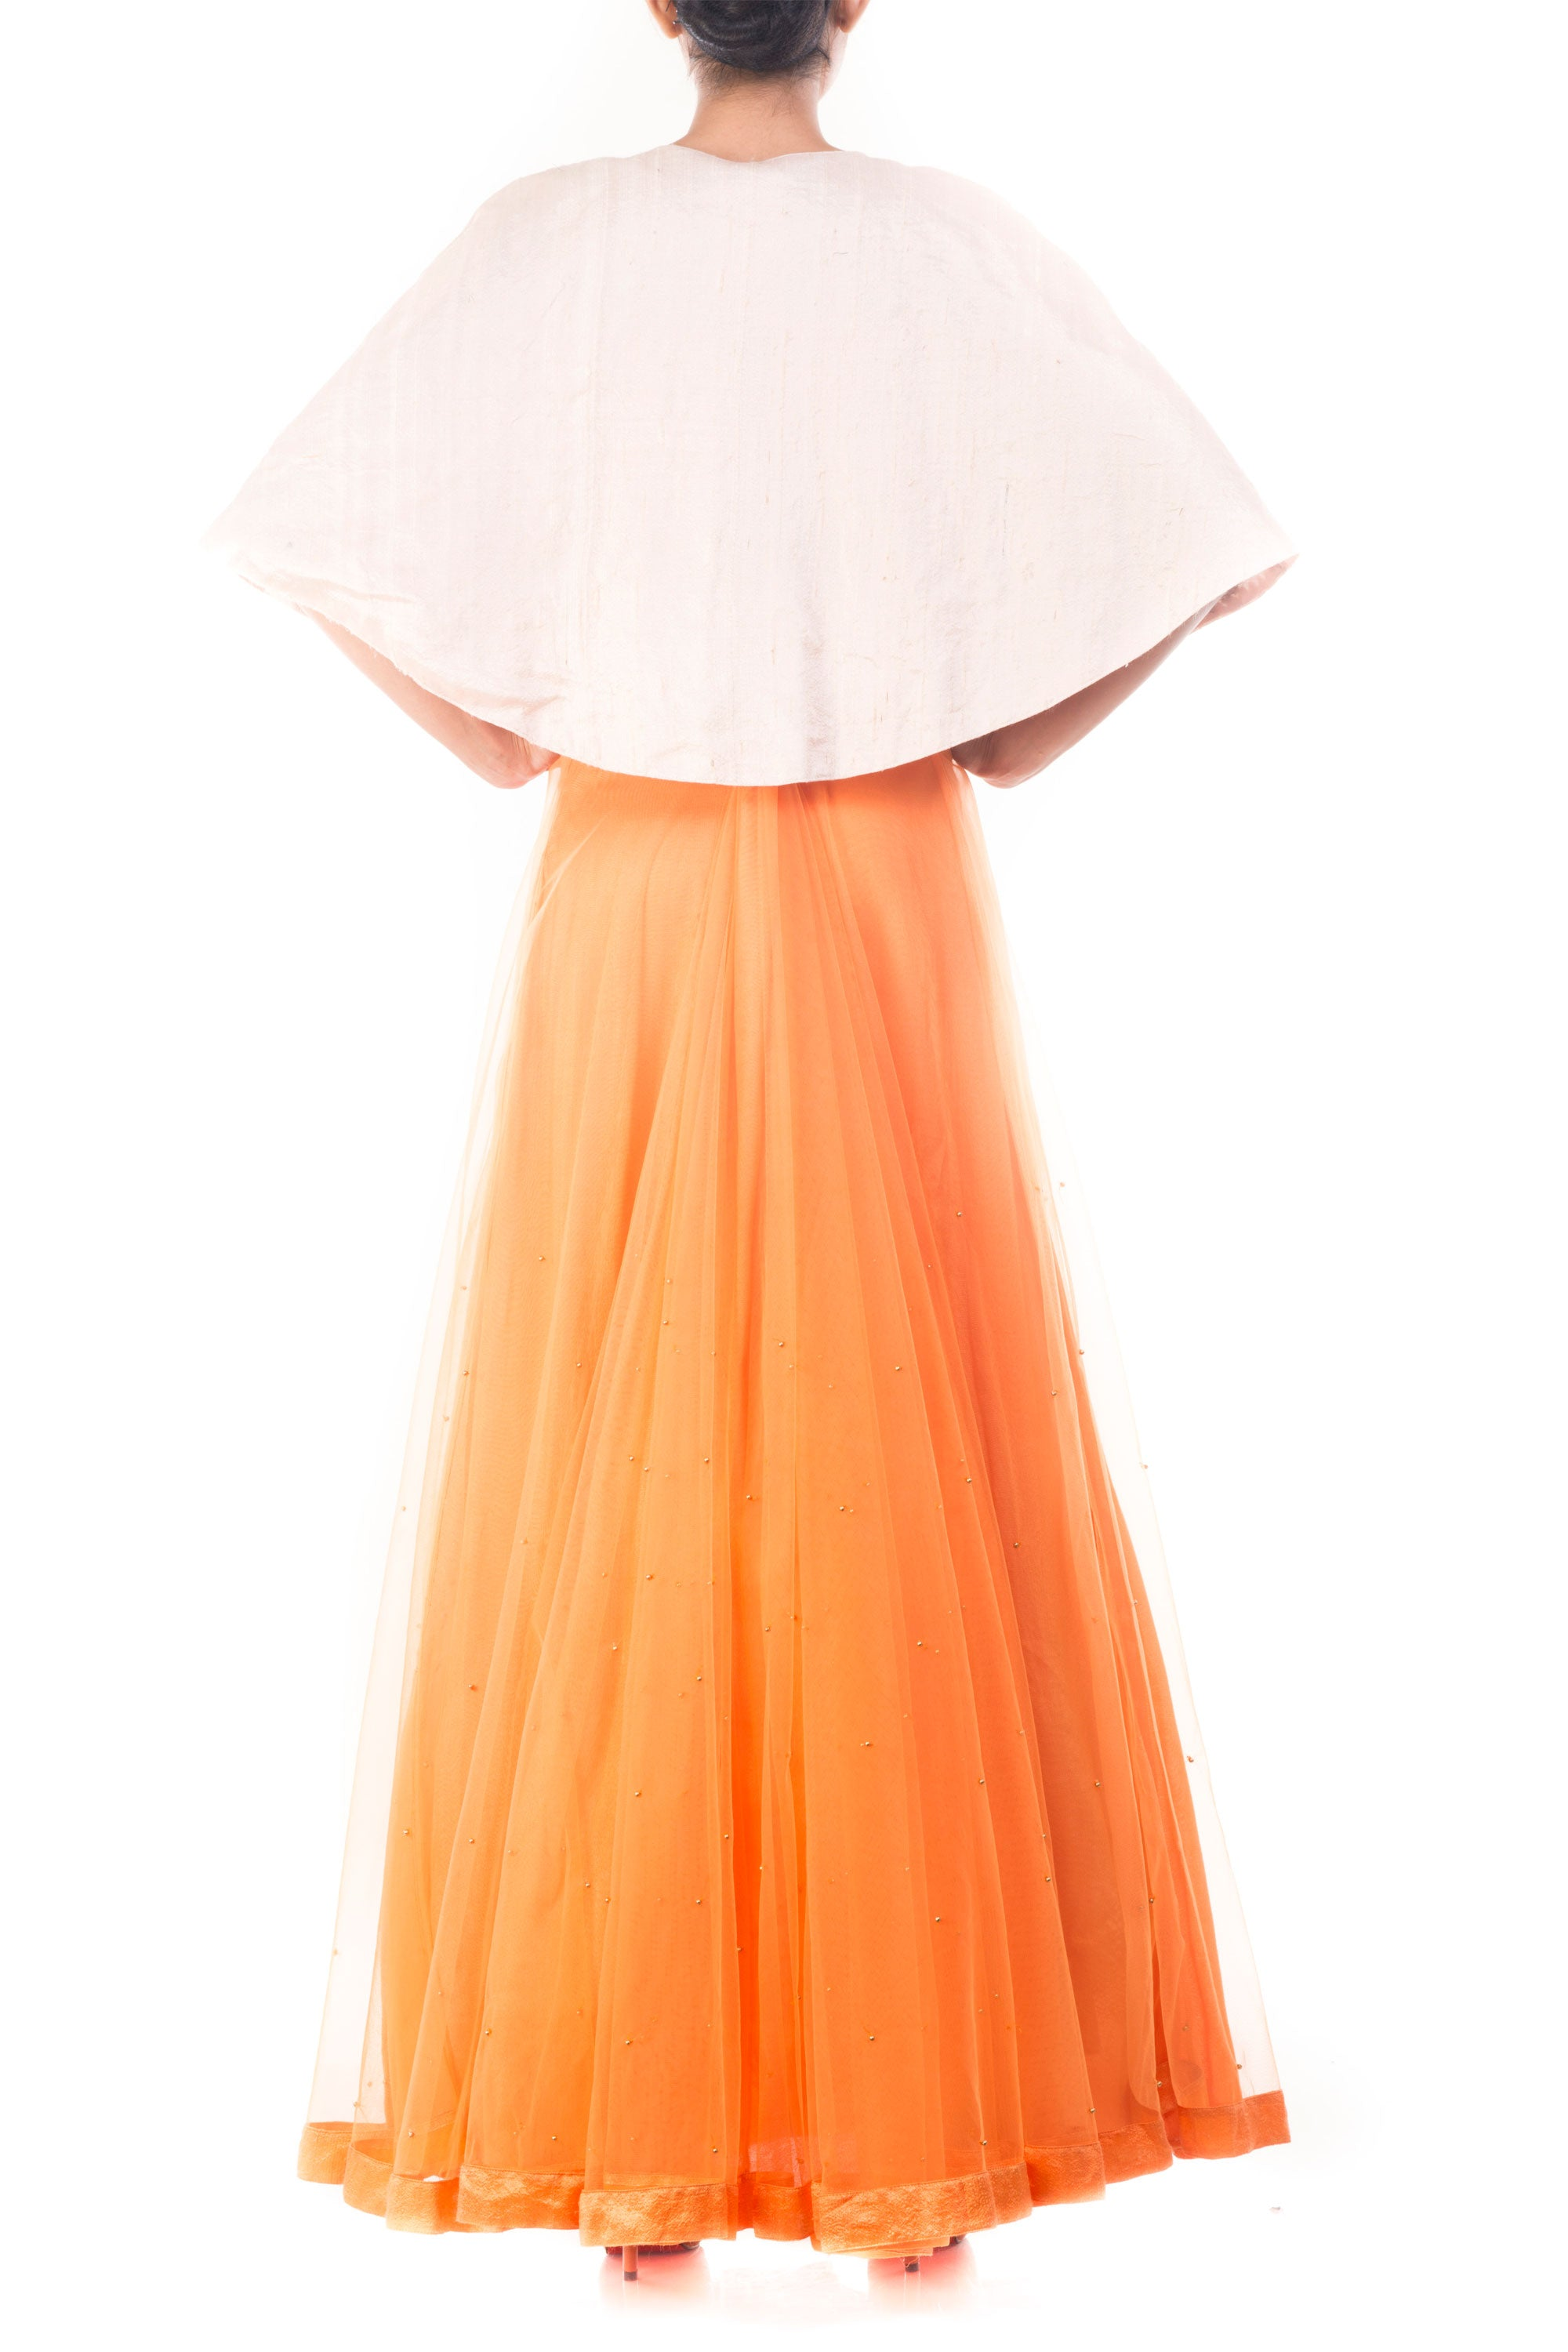 Tangerine Vintage Gown With Embellished Jacket Back